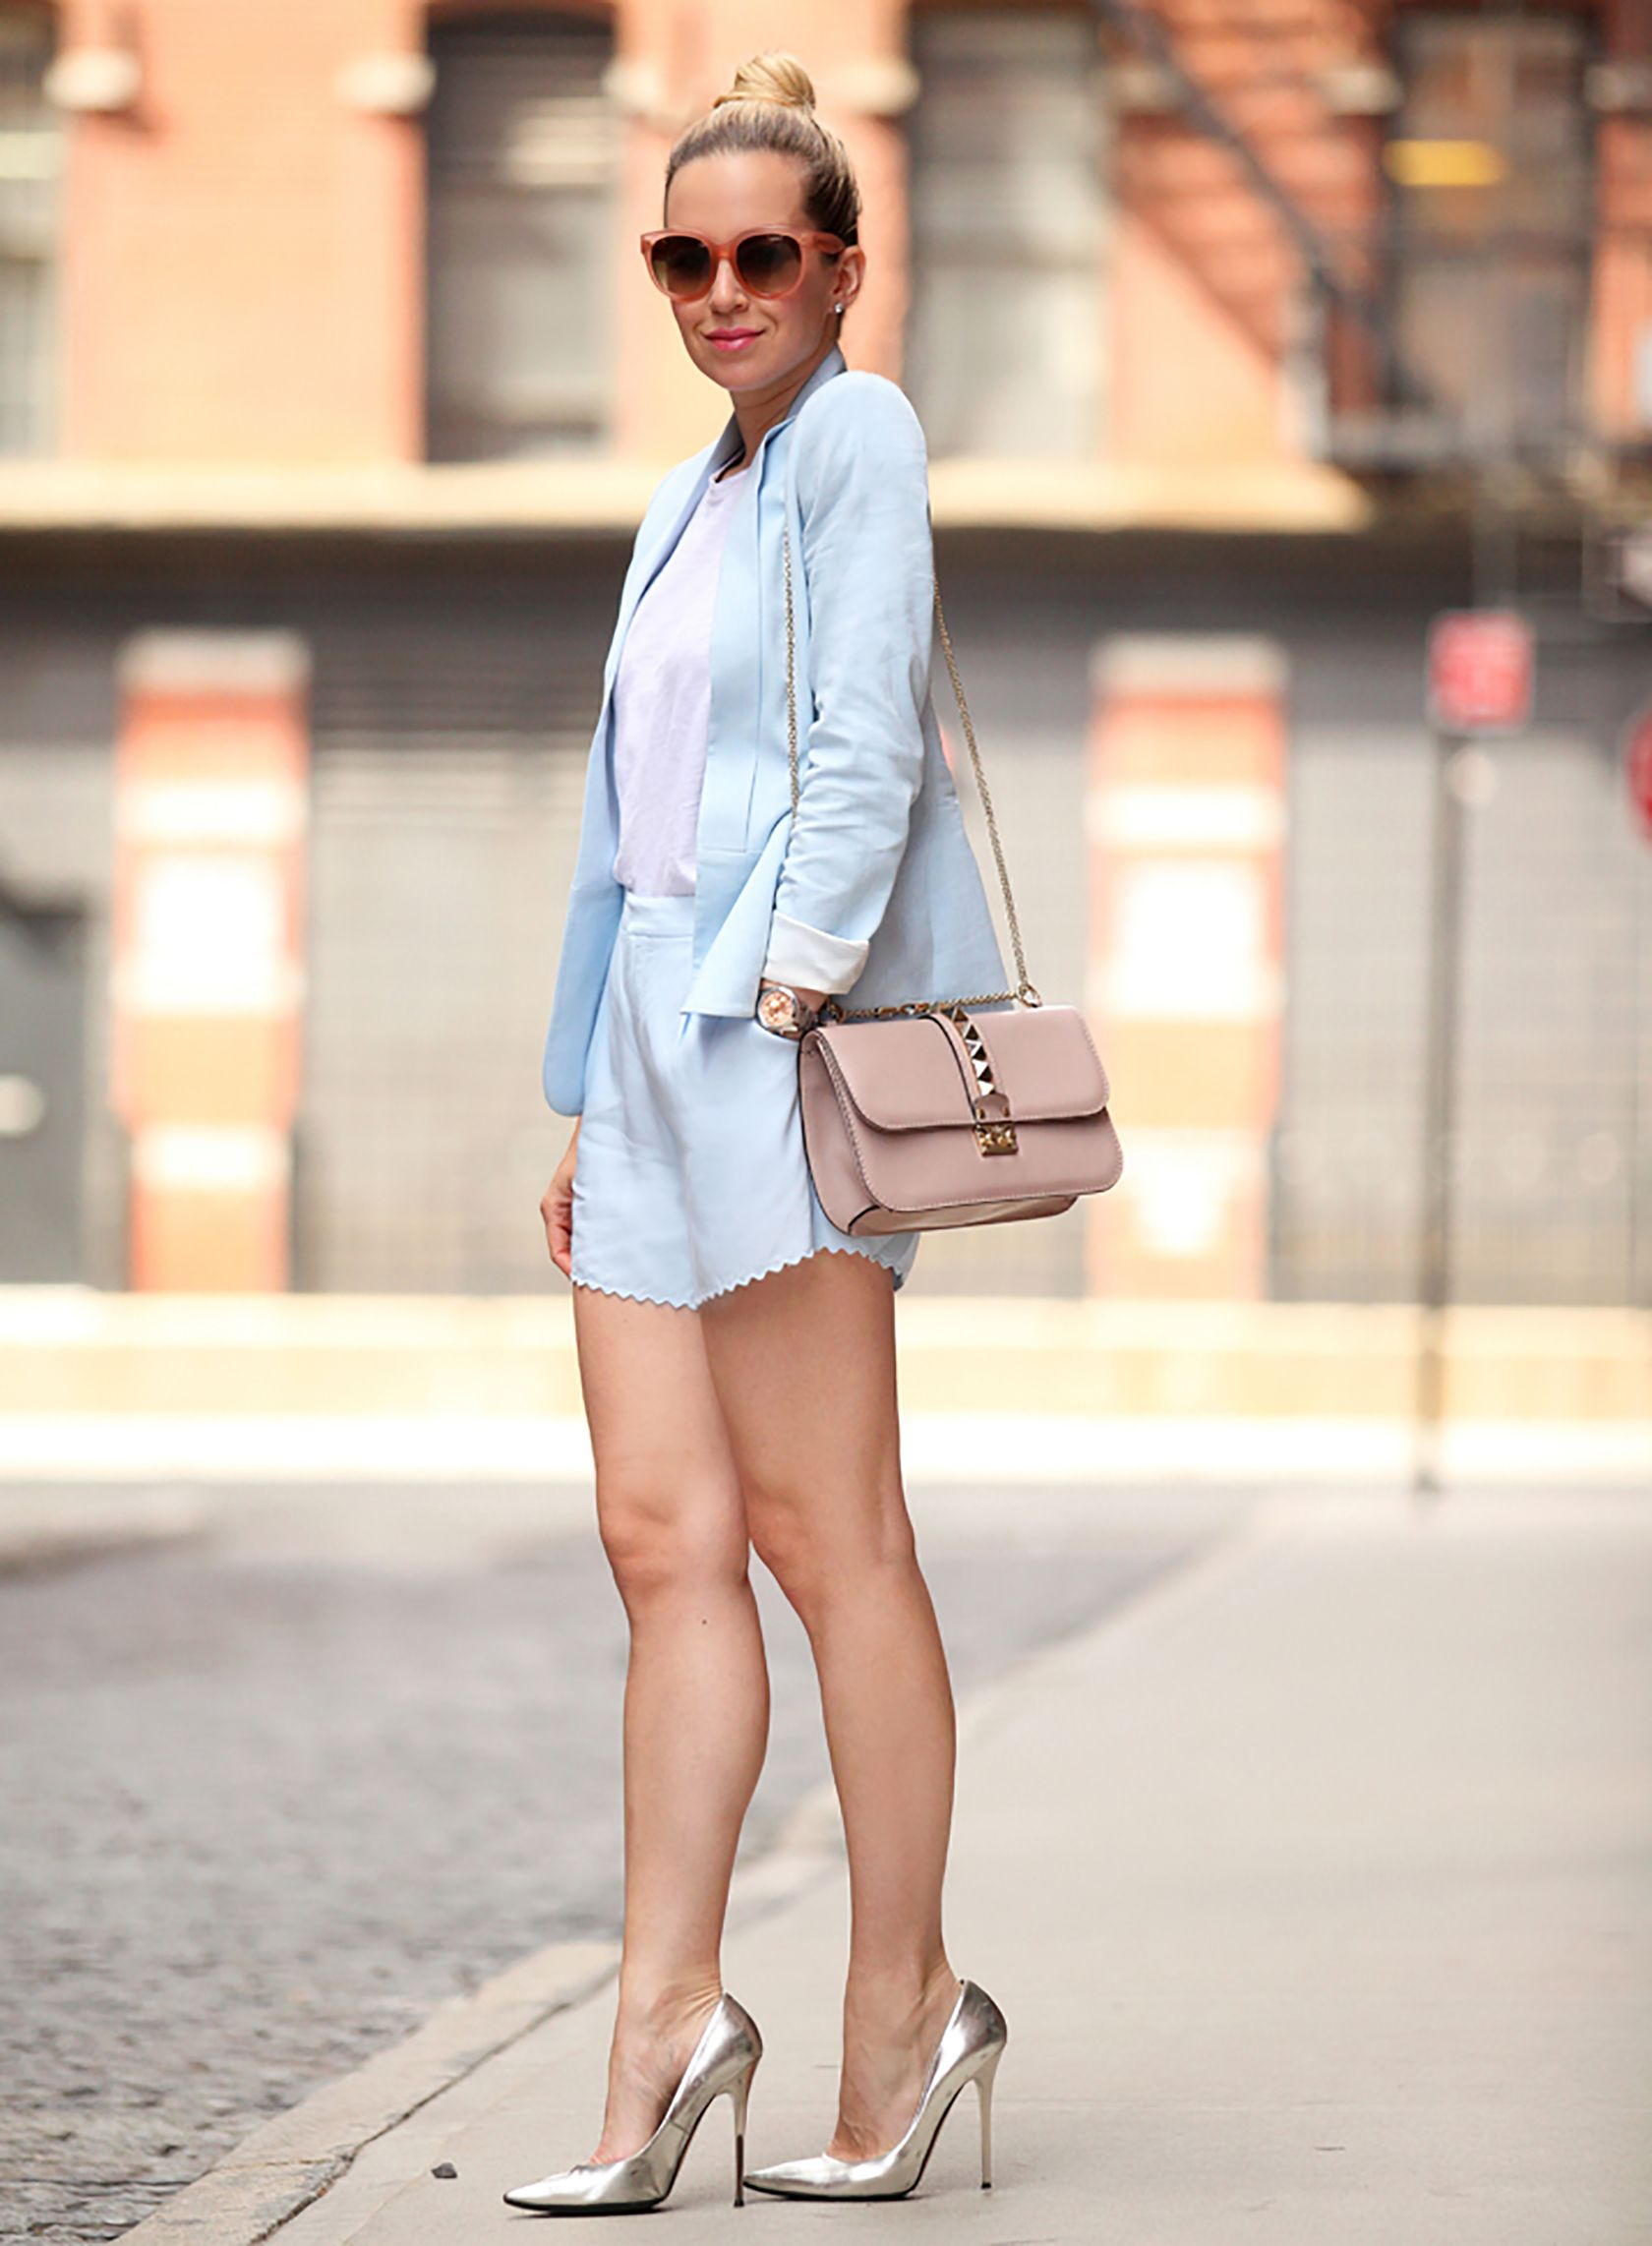 bf7ffb62e12ed Sydne Style shows how to wear pastel for spring from fashion blogger  brooklyn blonde in baby blue